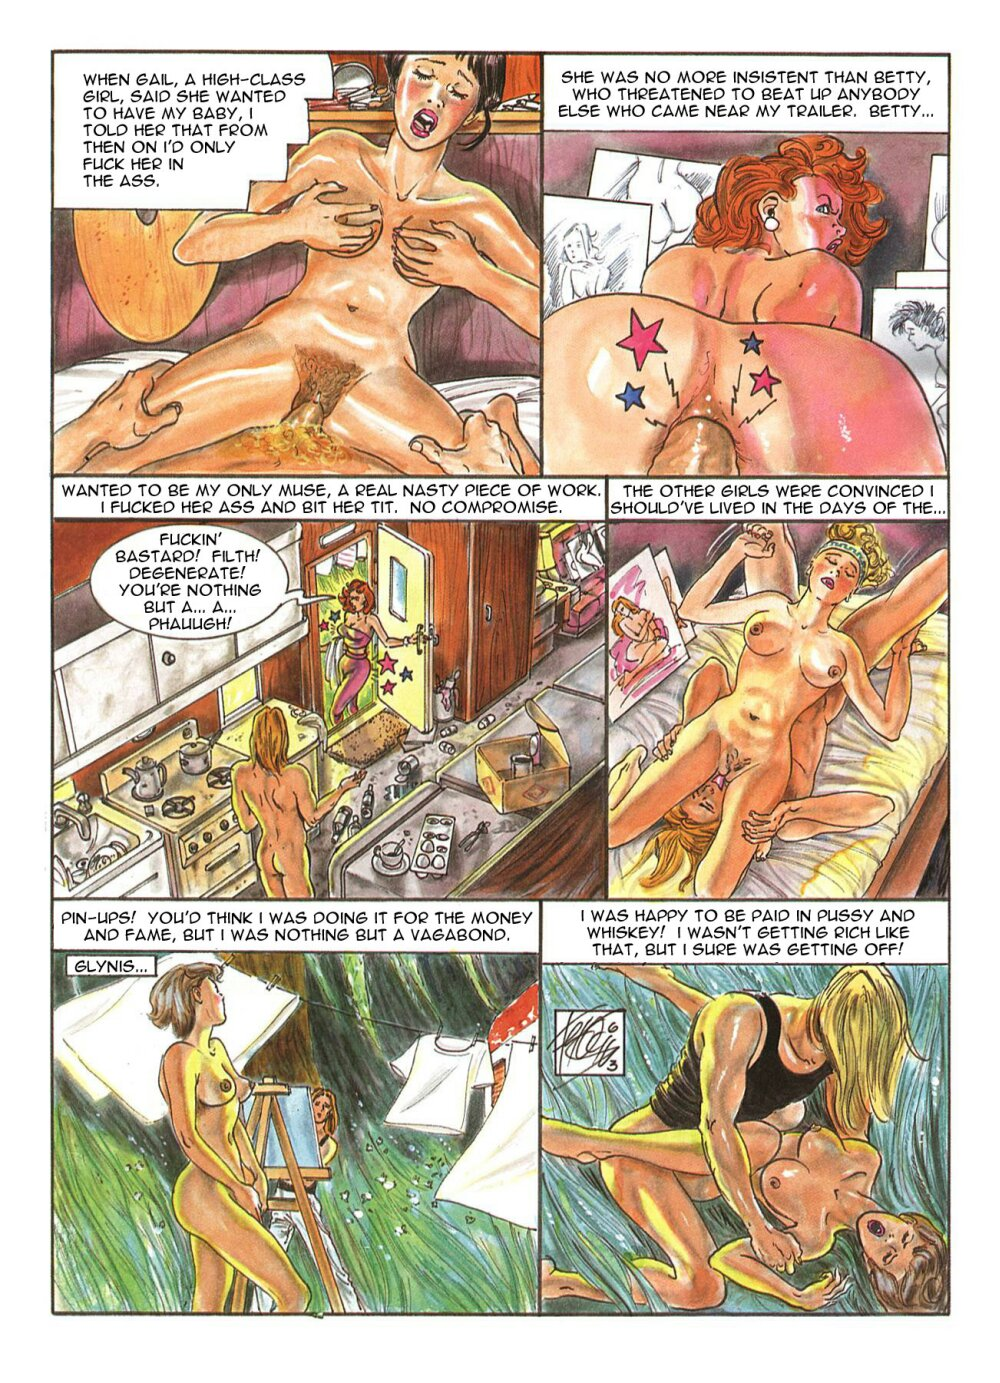 free cartoon porn comics